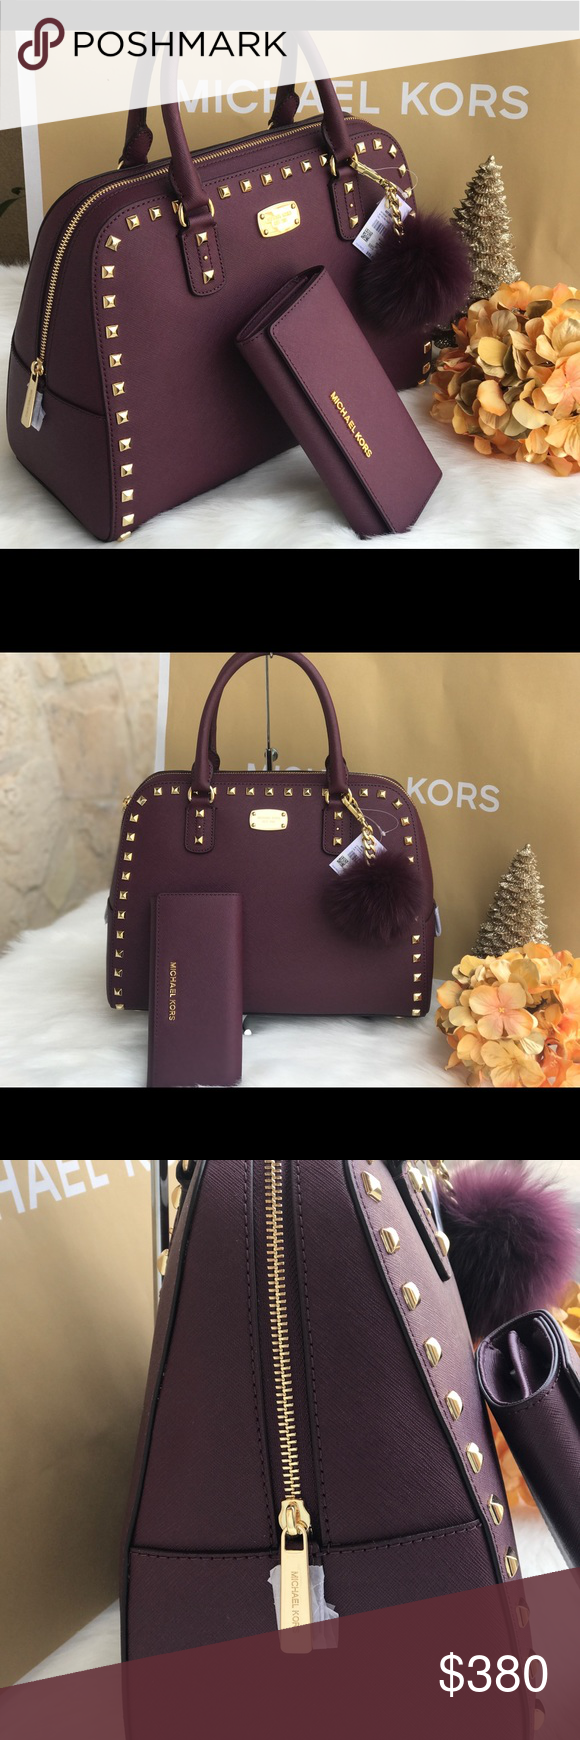 3d6da214fb85 🌷MICHAEL KORS Plum Saffiano Sandrine Satchel Set MICHAEL KORS Authentic  Plum Large Studded Sandrine Tote and Wallet Set 🌷 Pom is not included but  ...